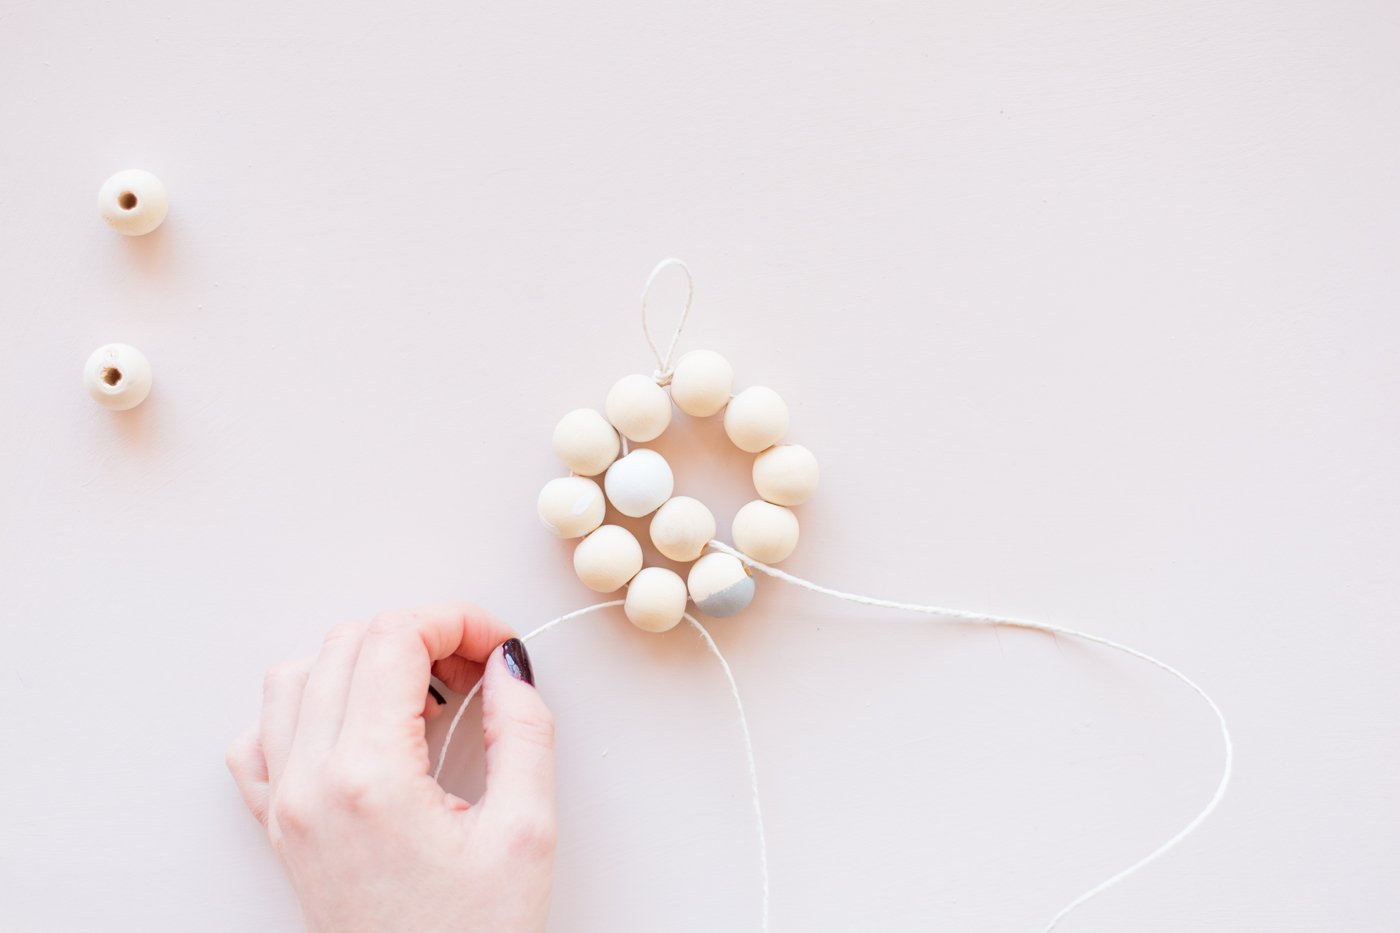 diy-beaded-gift-toppers-tutorial-with-dulux-fallfordiy-13